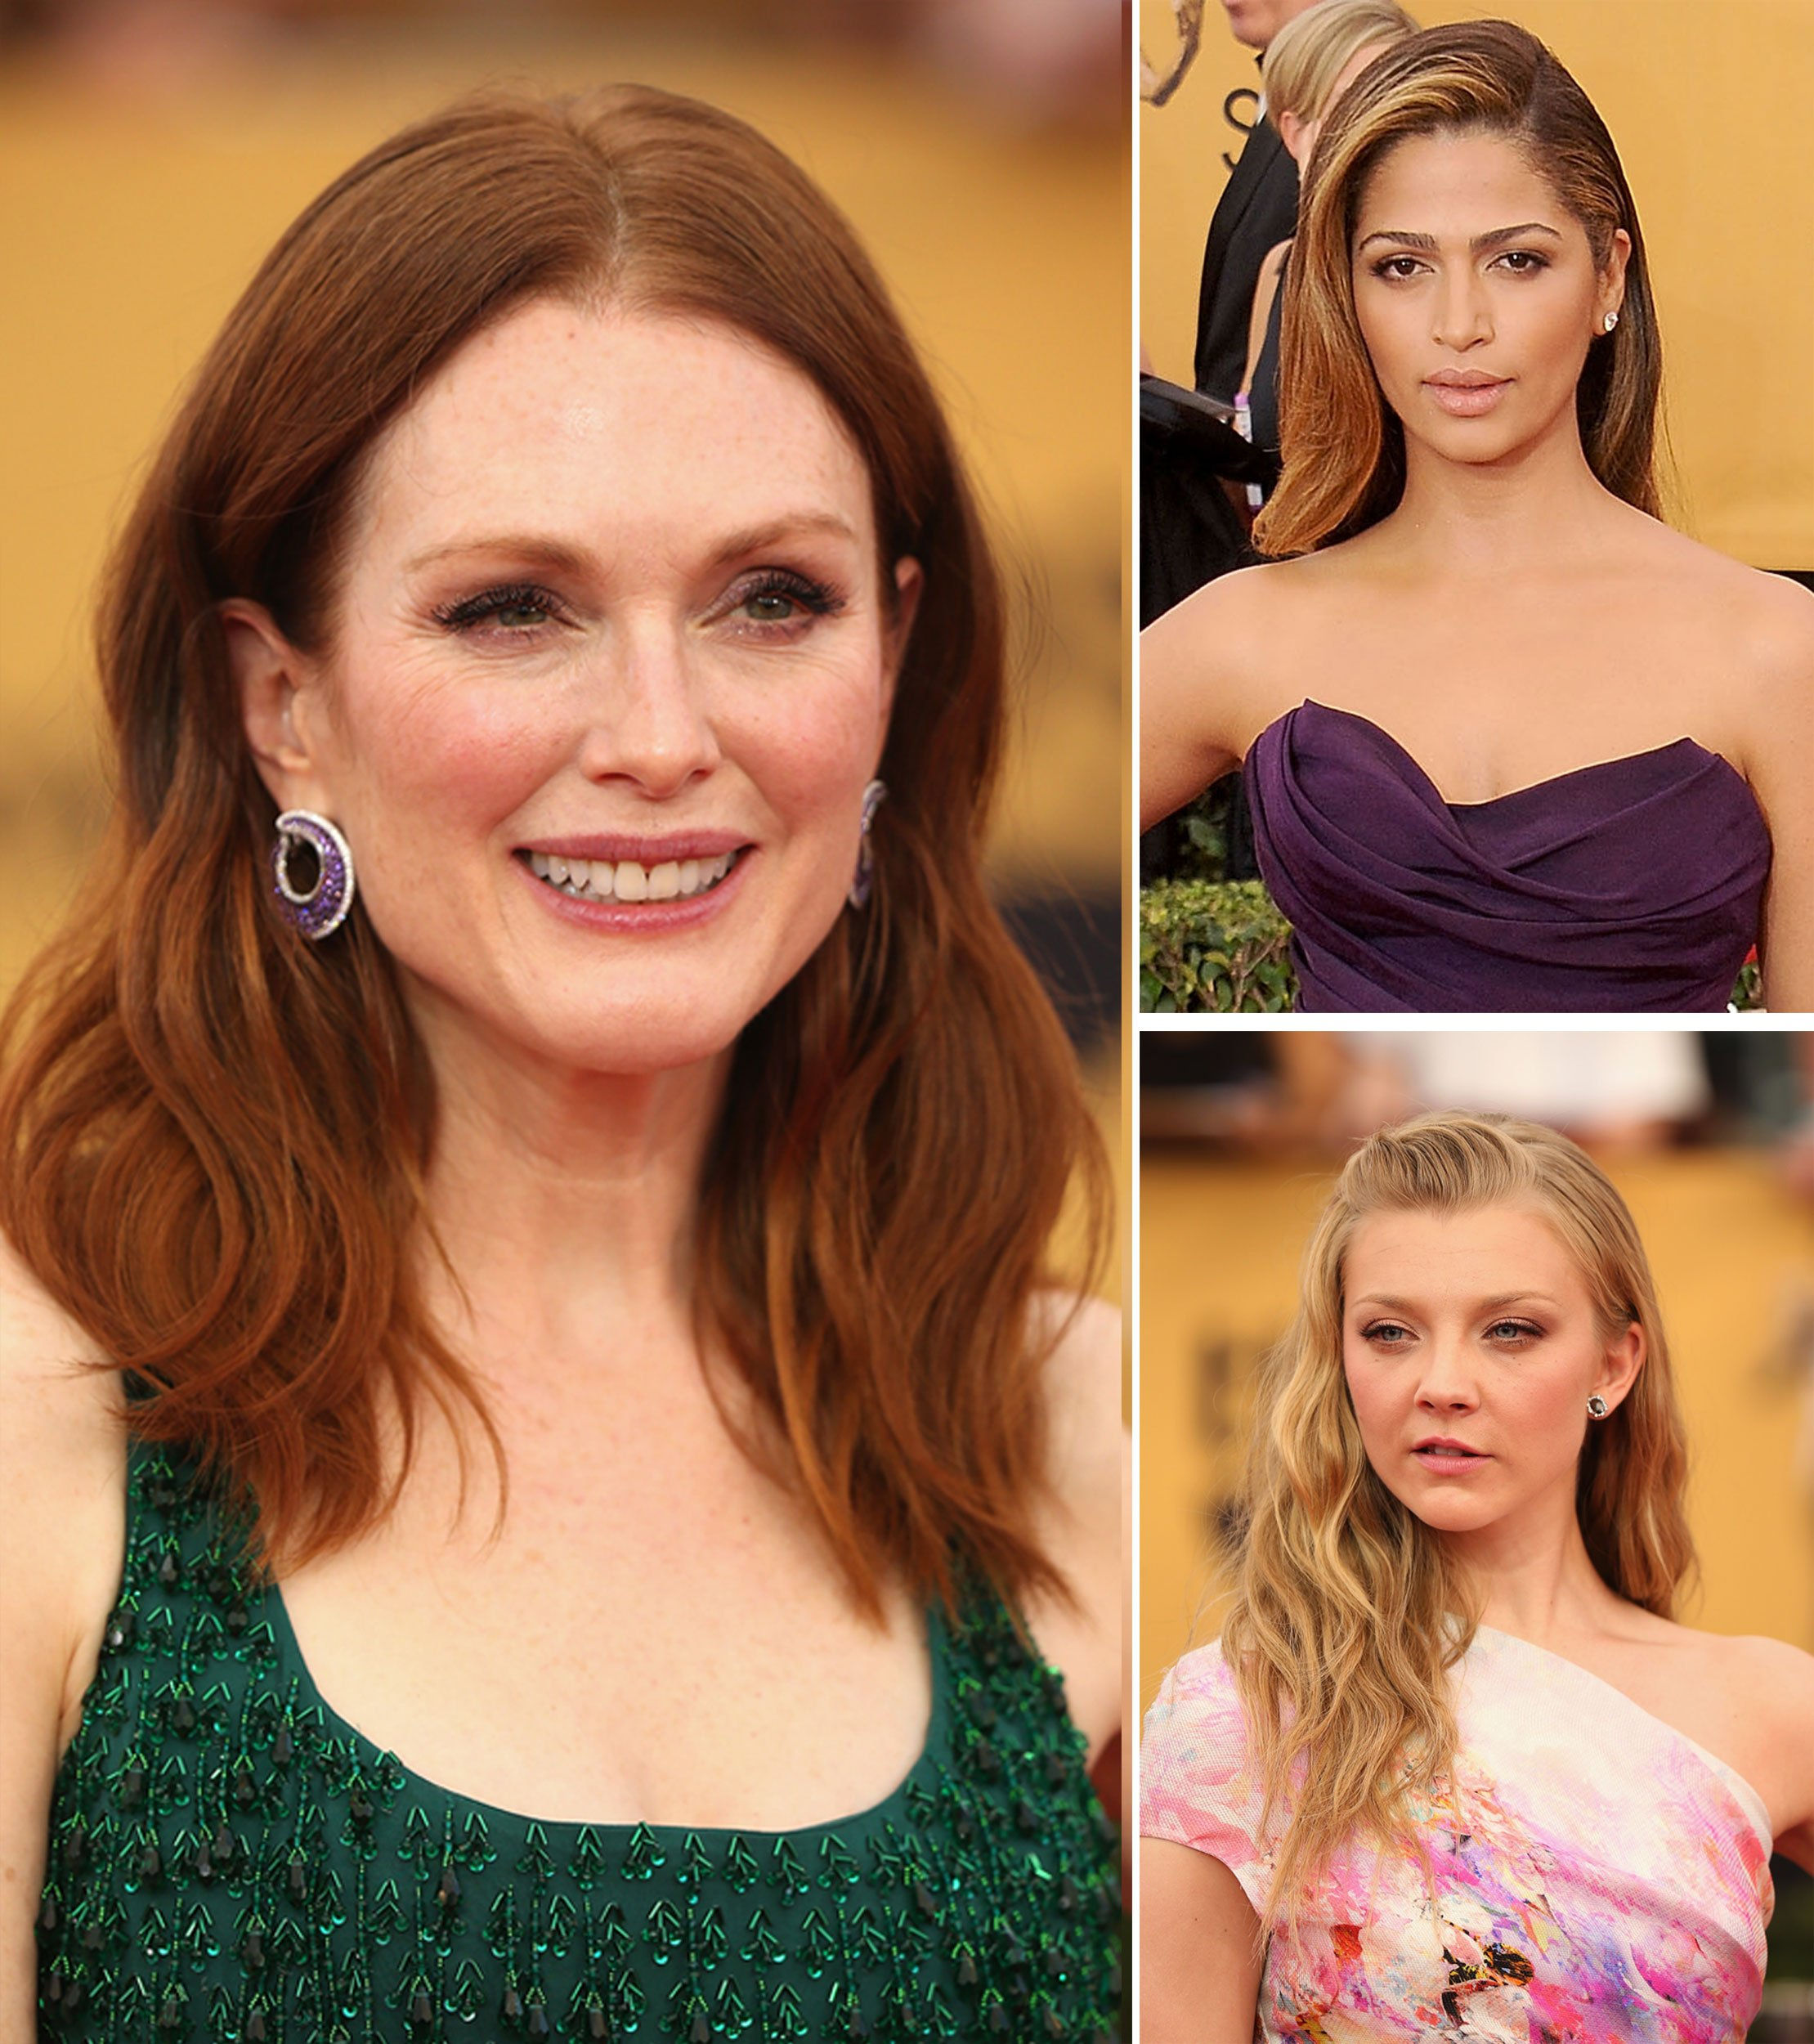 Julianne Moore (left), Camila Alves (top right) and Natalie Dormer (bottom right) show off wavy styles at the 2015 SAG Awards.  (photo credit: Getty Images) Getty Images